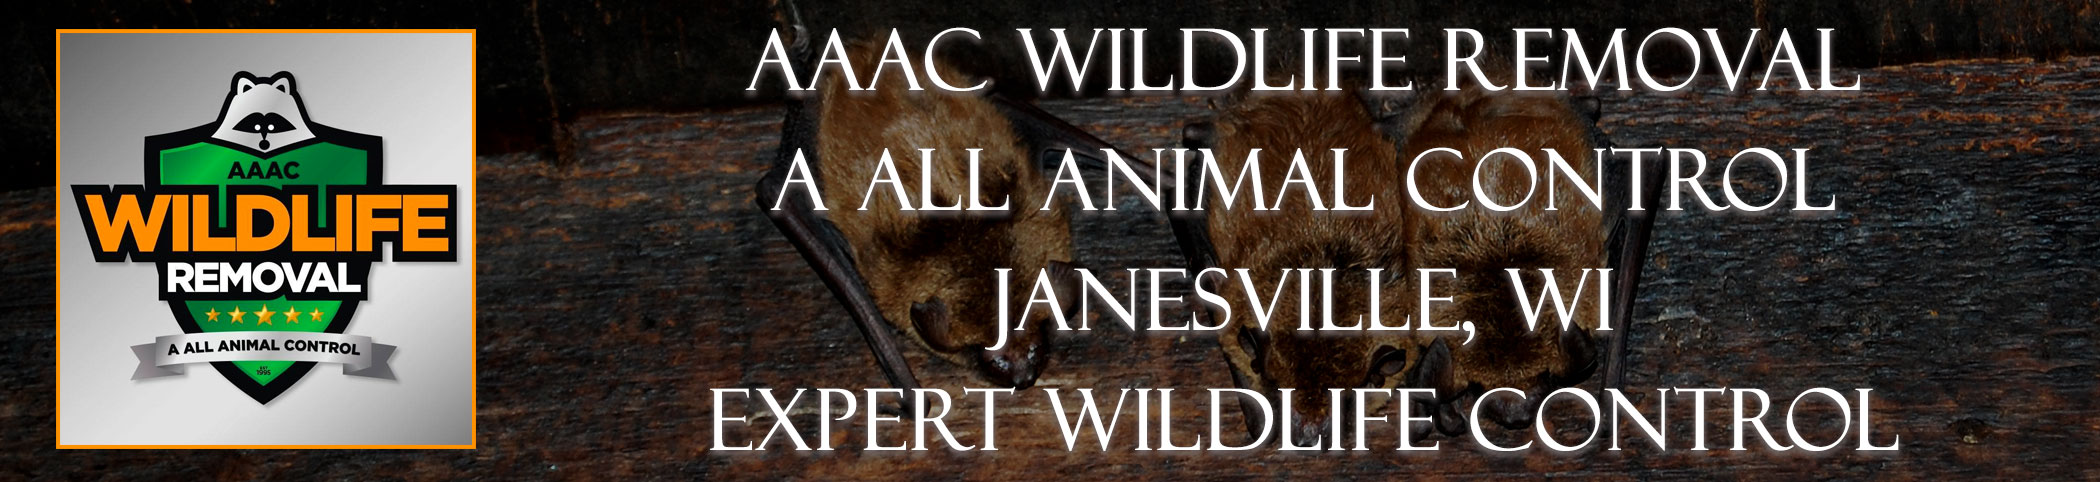 aaac-wildlife-removal-Janesville-wisconsin